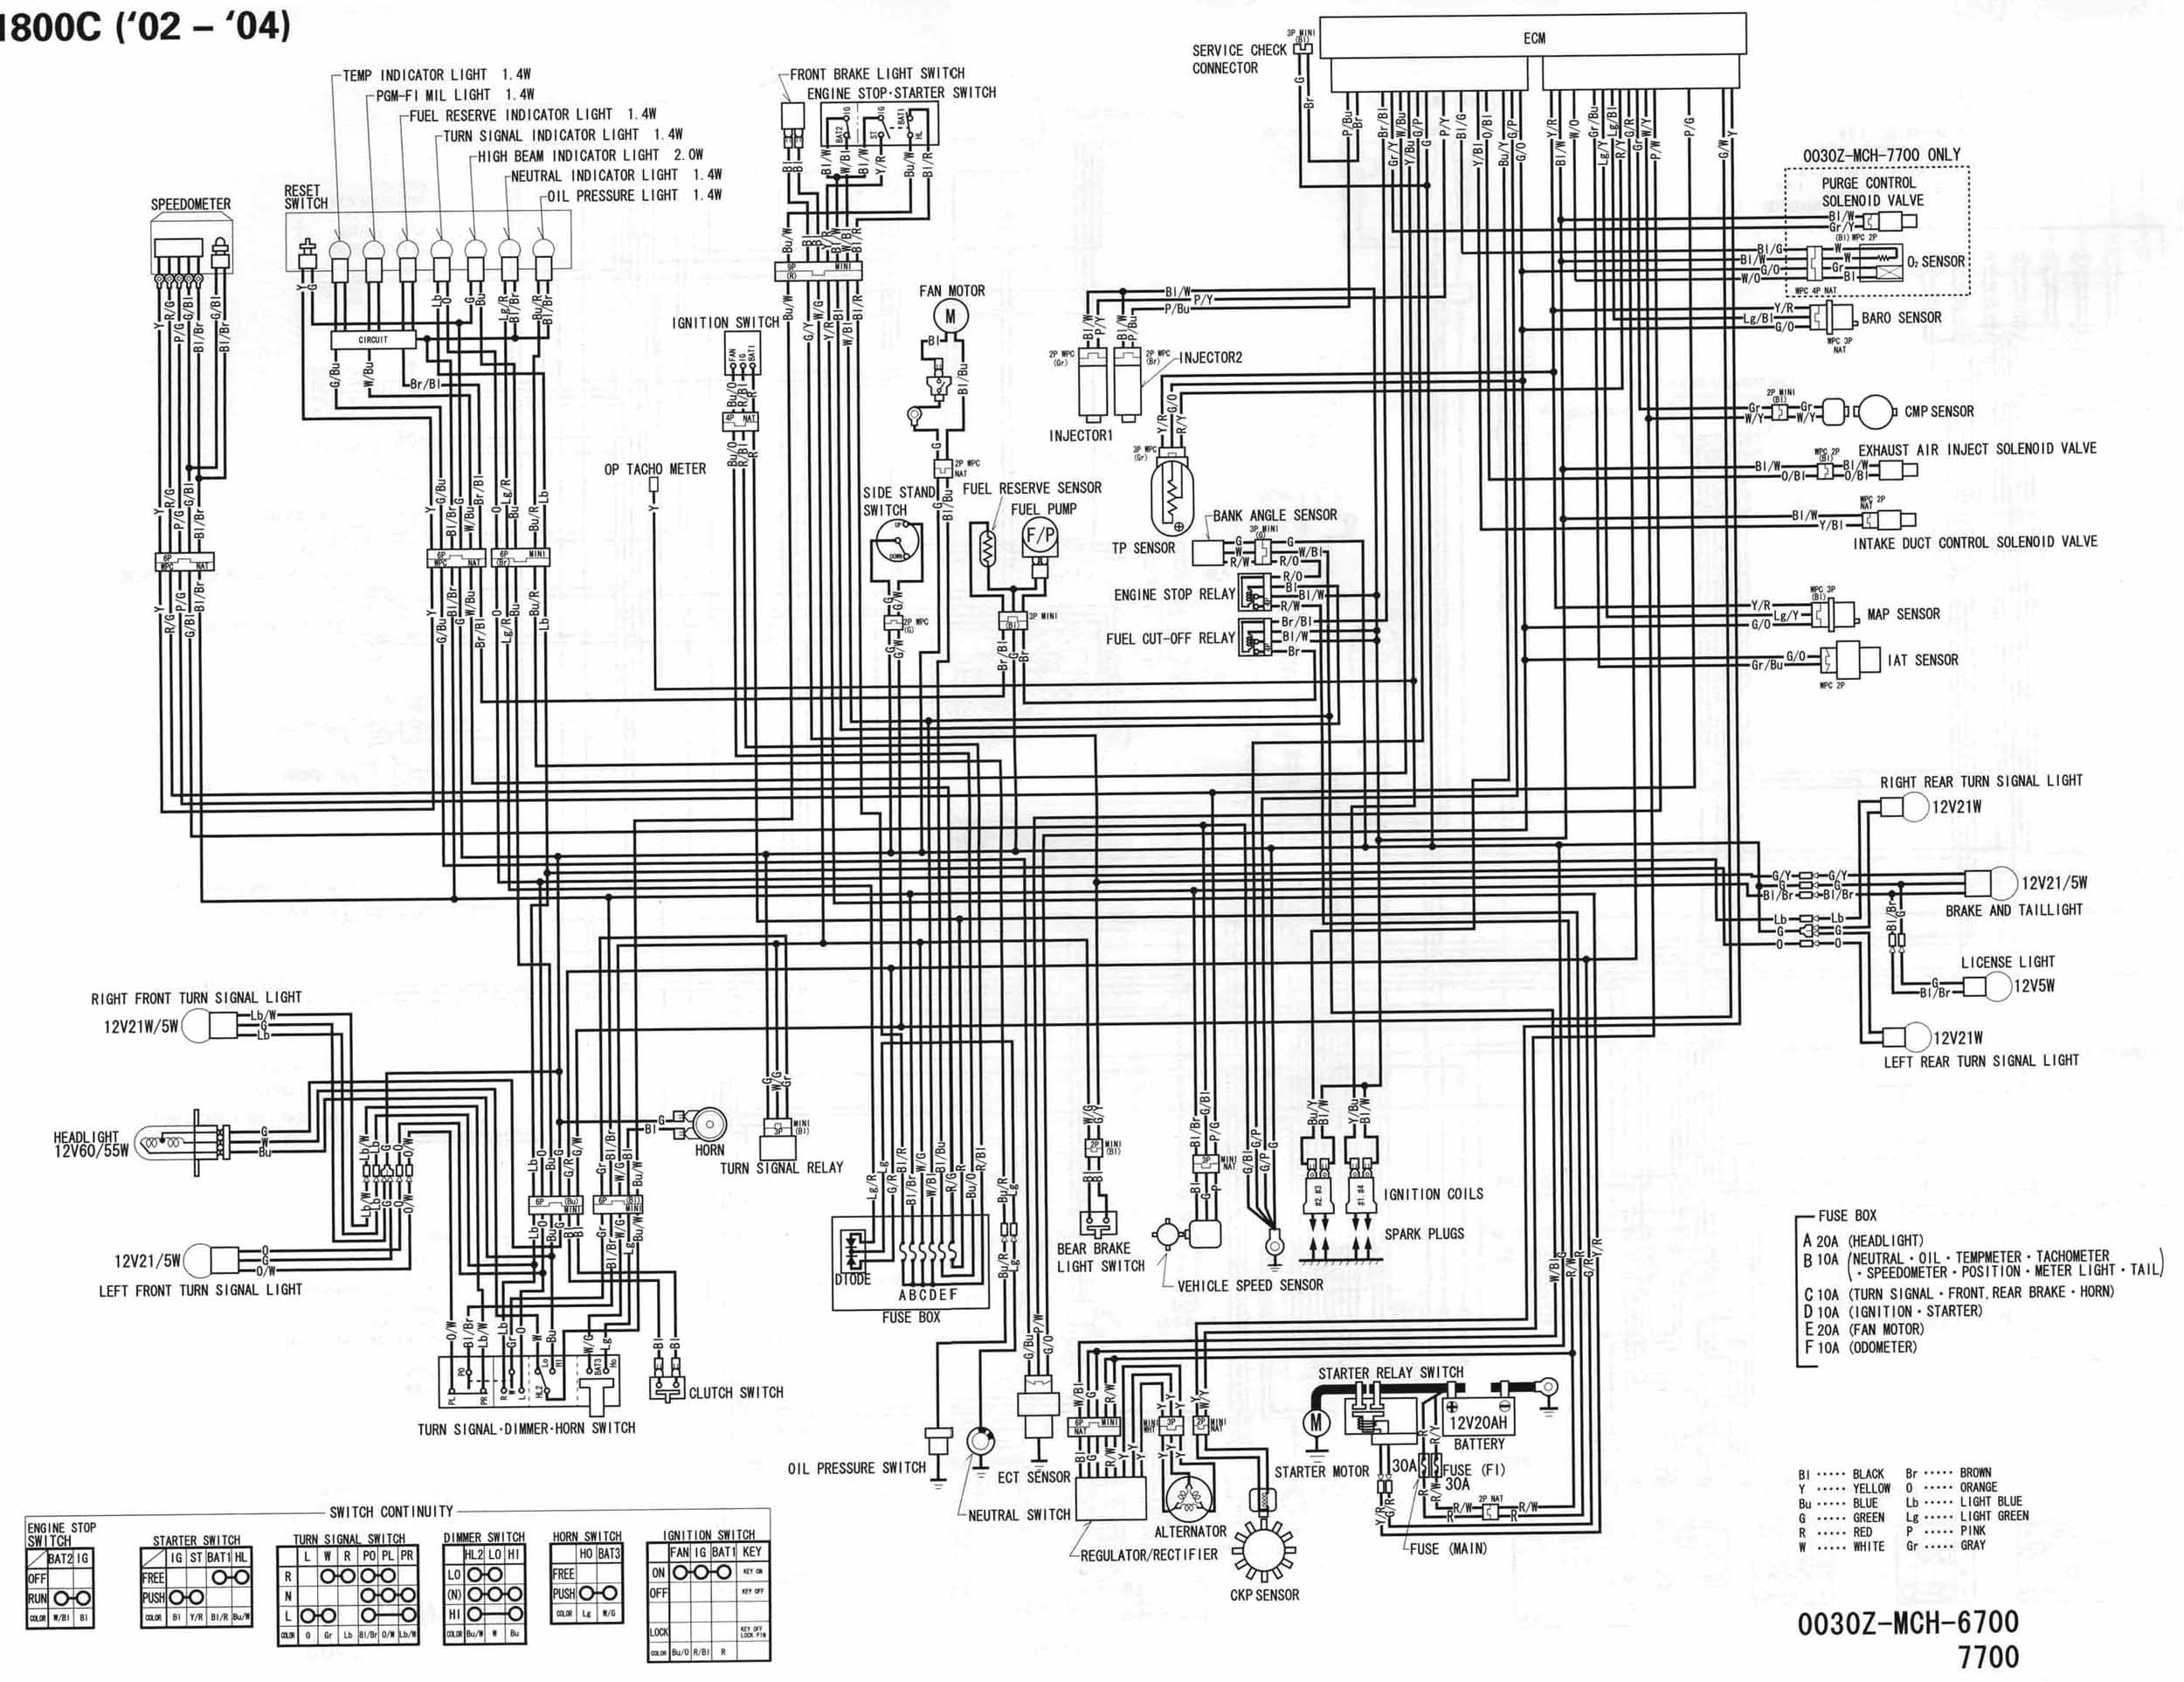 motorcycle wire schematics acirc bareass choppers motorcycle tech pages 02 04 vtx 1800c schematic